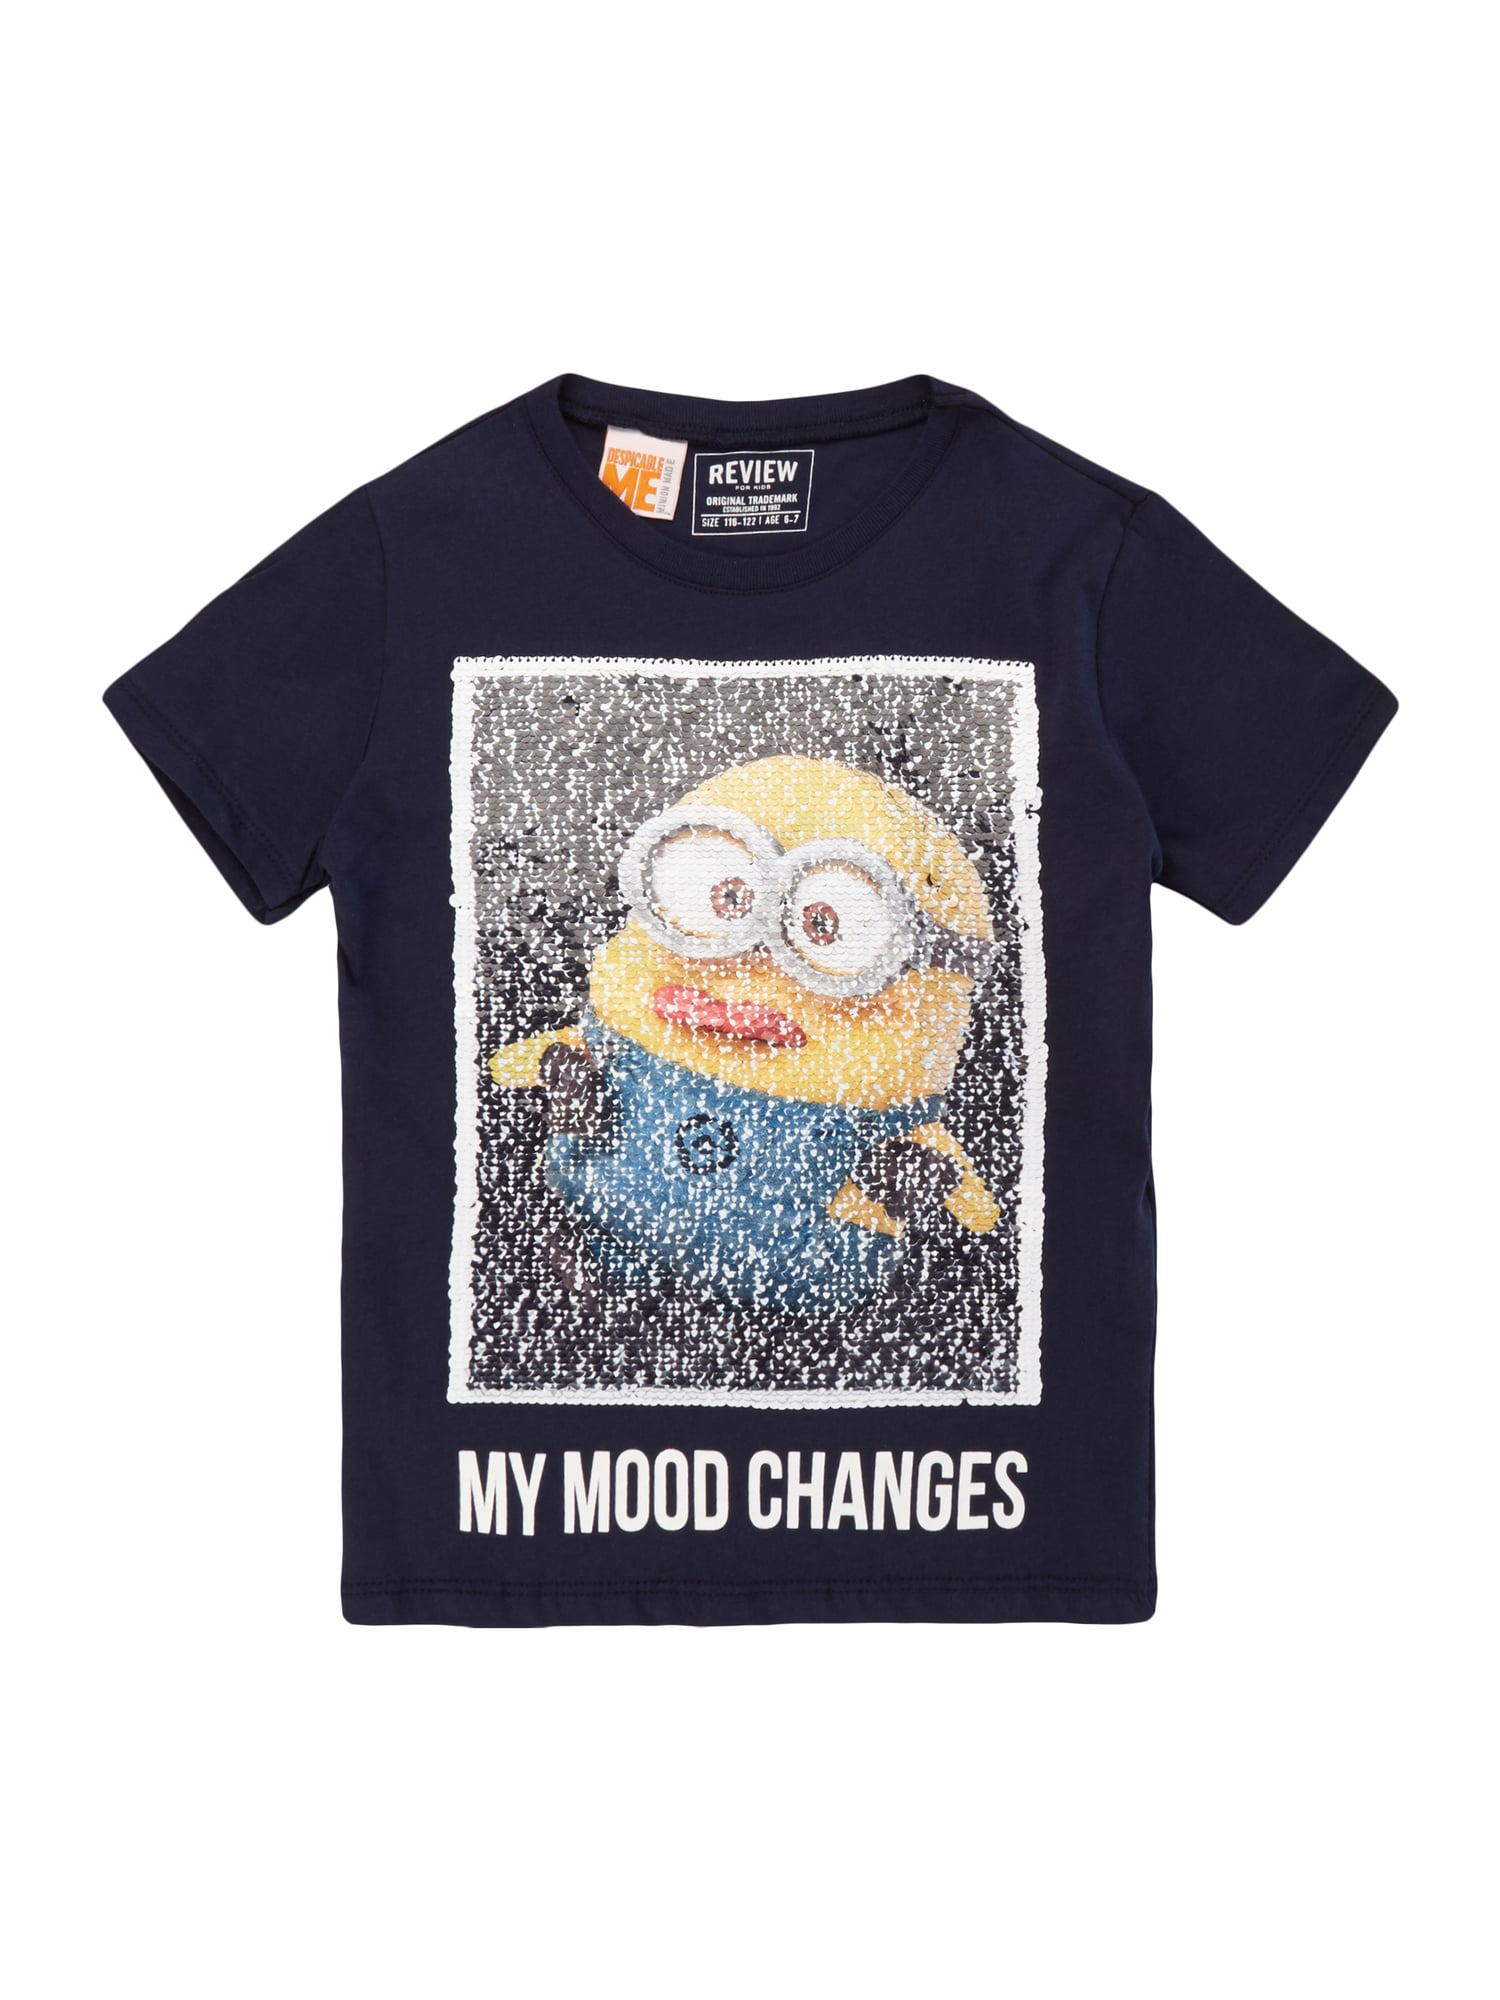 review for kids t shirt mit minions motiv aus wende. Black Bedroom Furniture Sets. Home Design Ideas